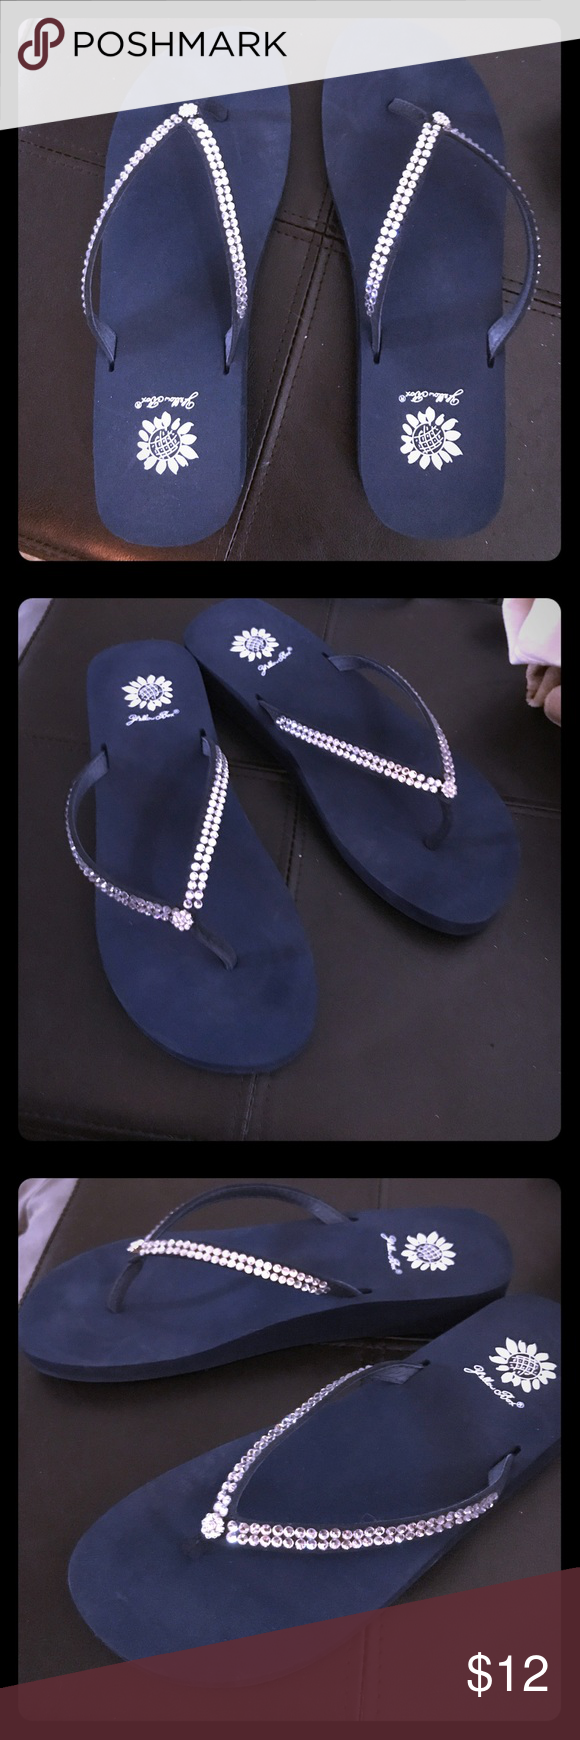 efca7908b207e5 Yellow box thong sandals with rhinestone trim Navy blue with rhinestone  trim sandals